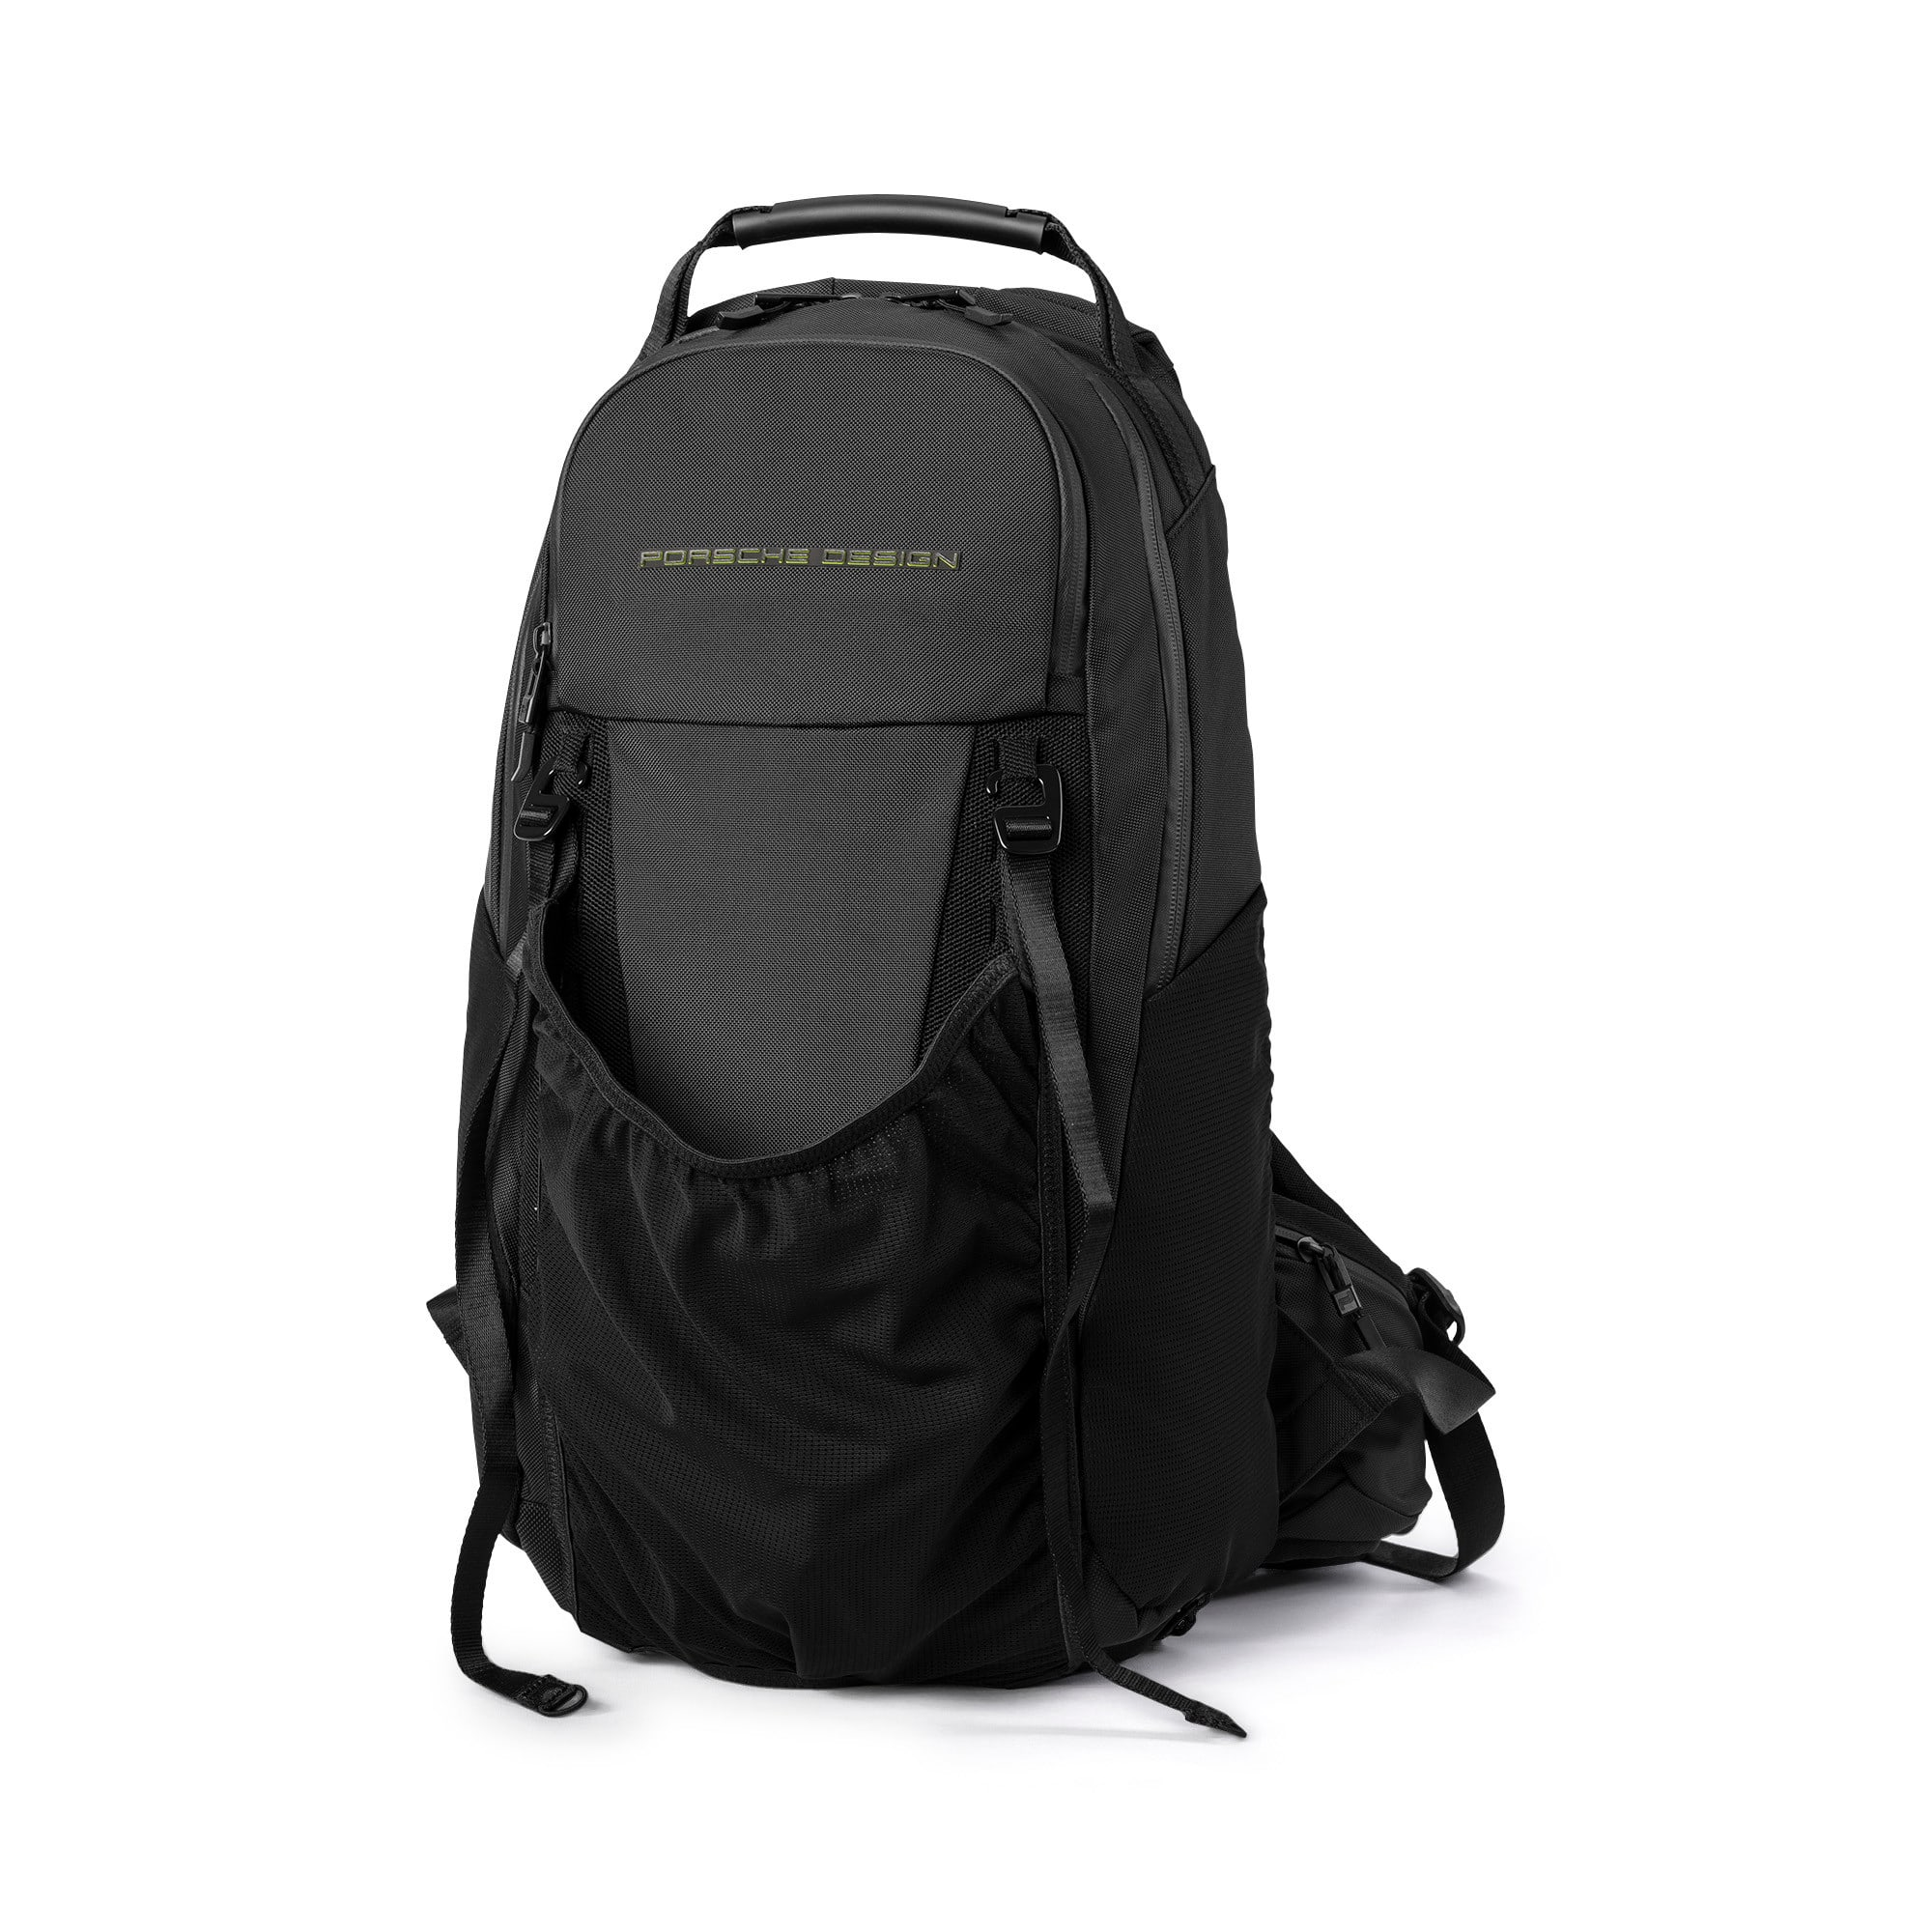 Thumbnail 5 of Porsche Design evoKNIT Active Backpack, Puma Black, medium